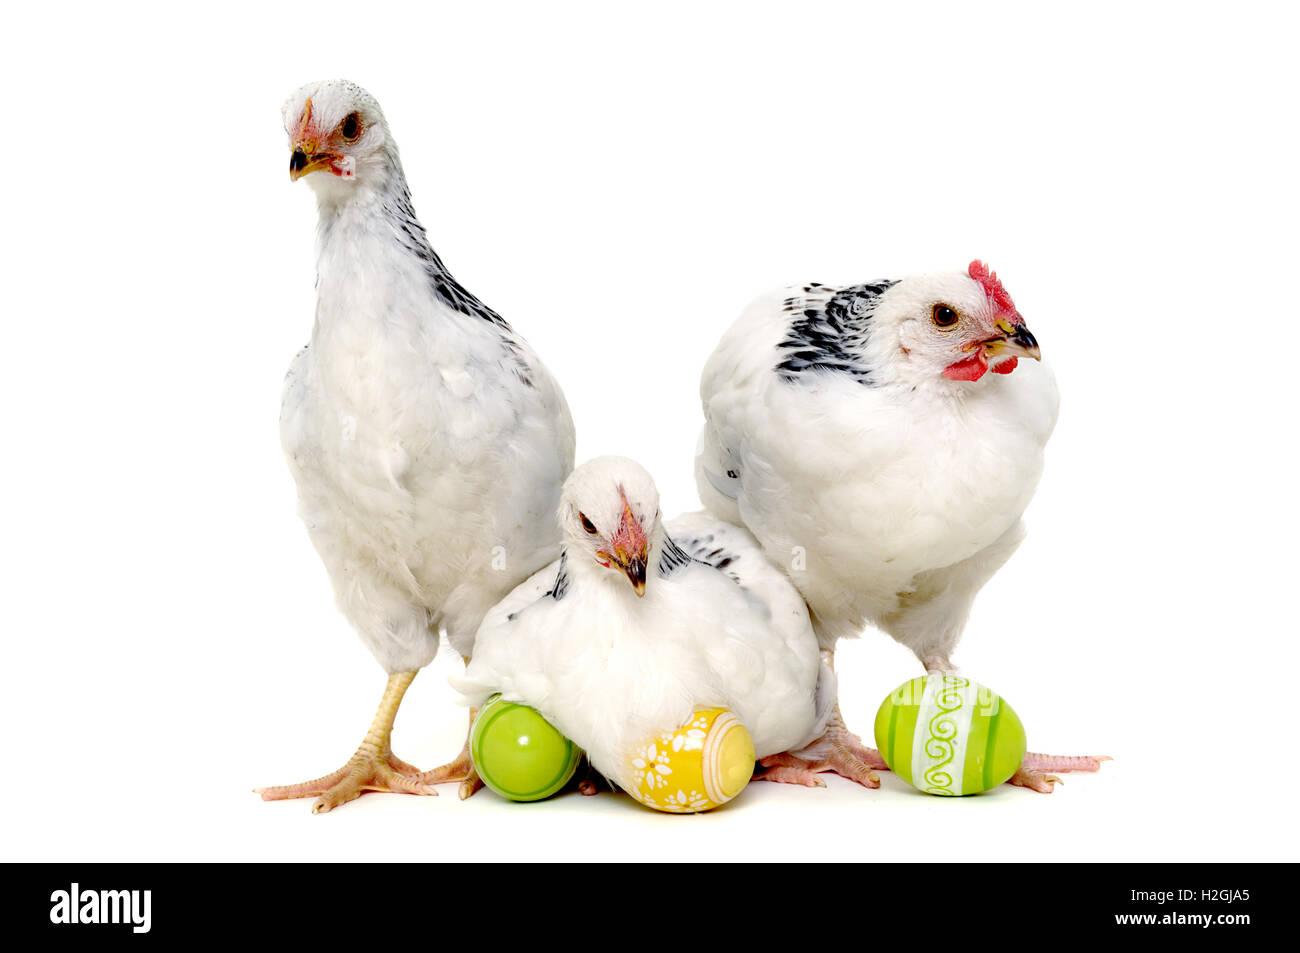 Chickens and easter eggs - Stock Image